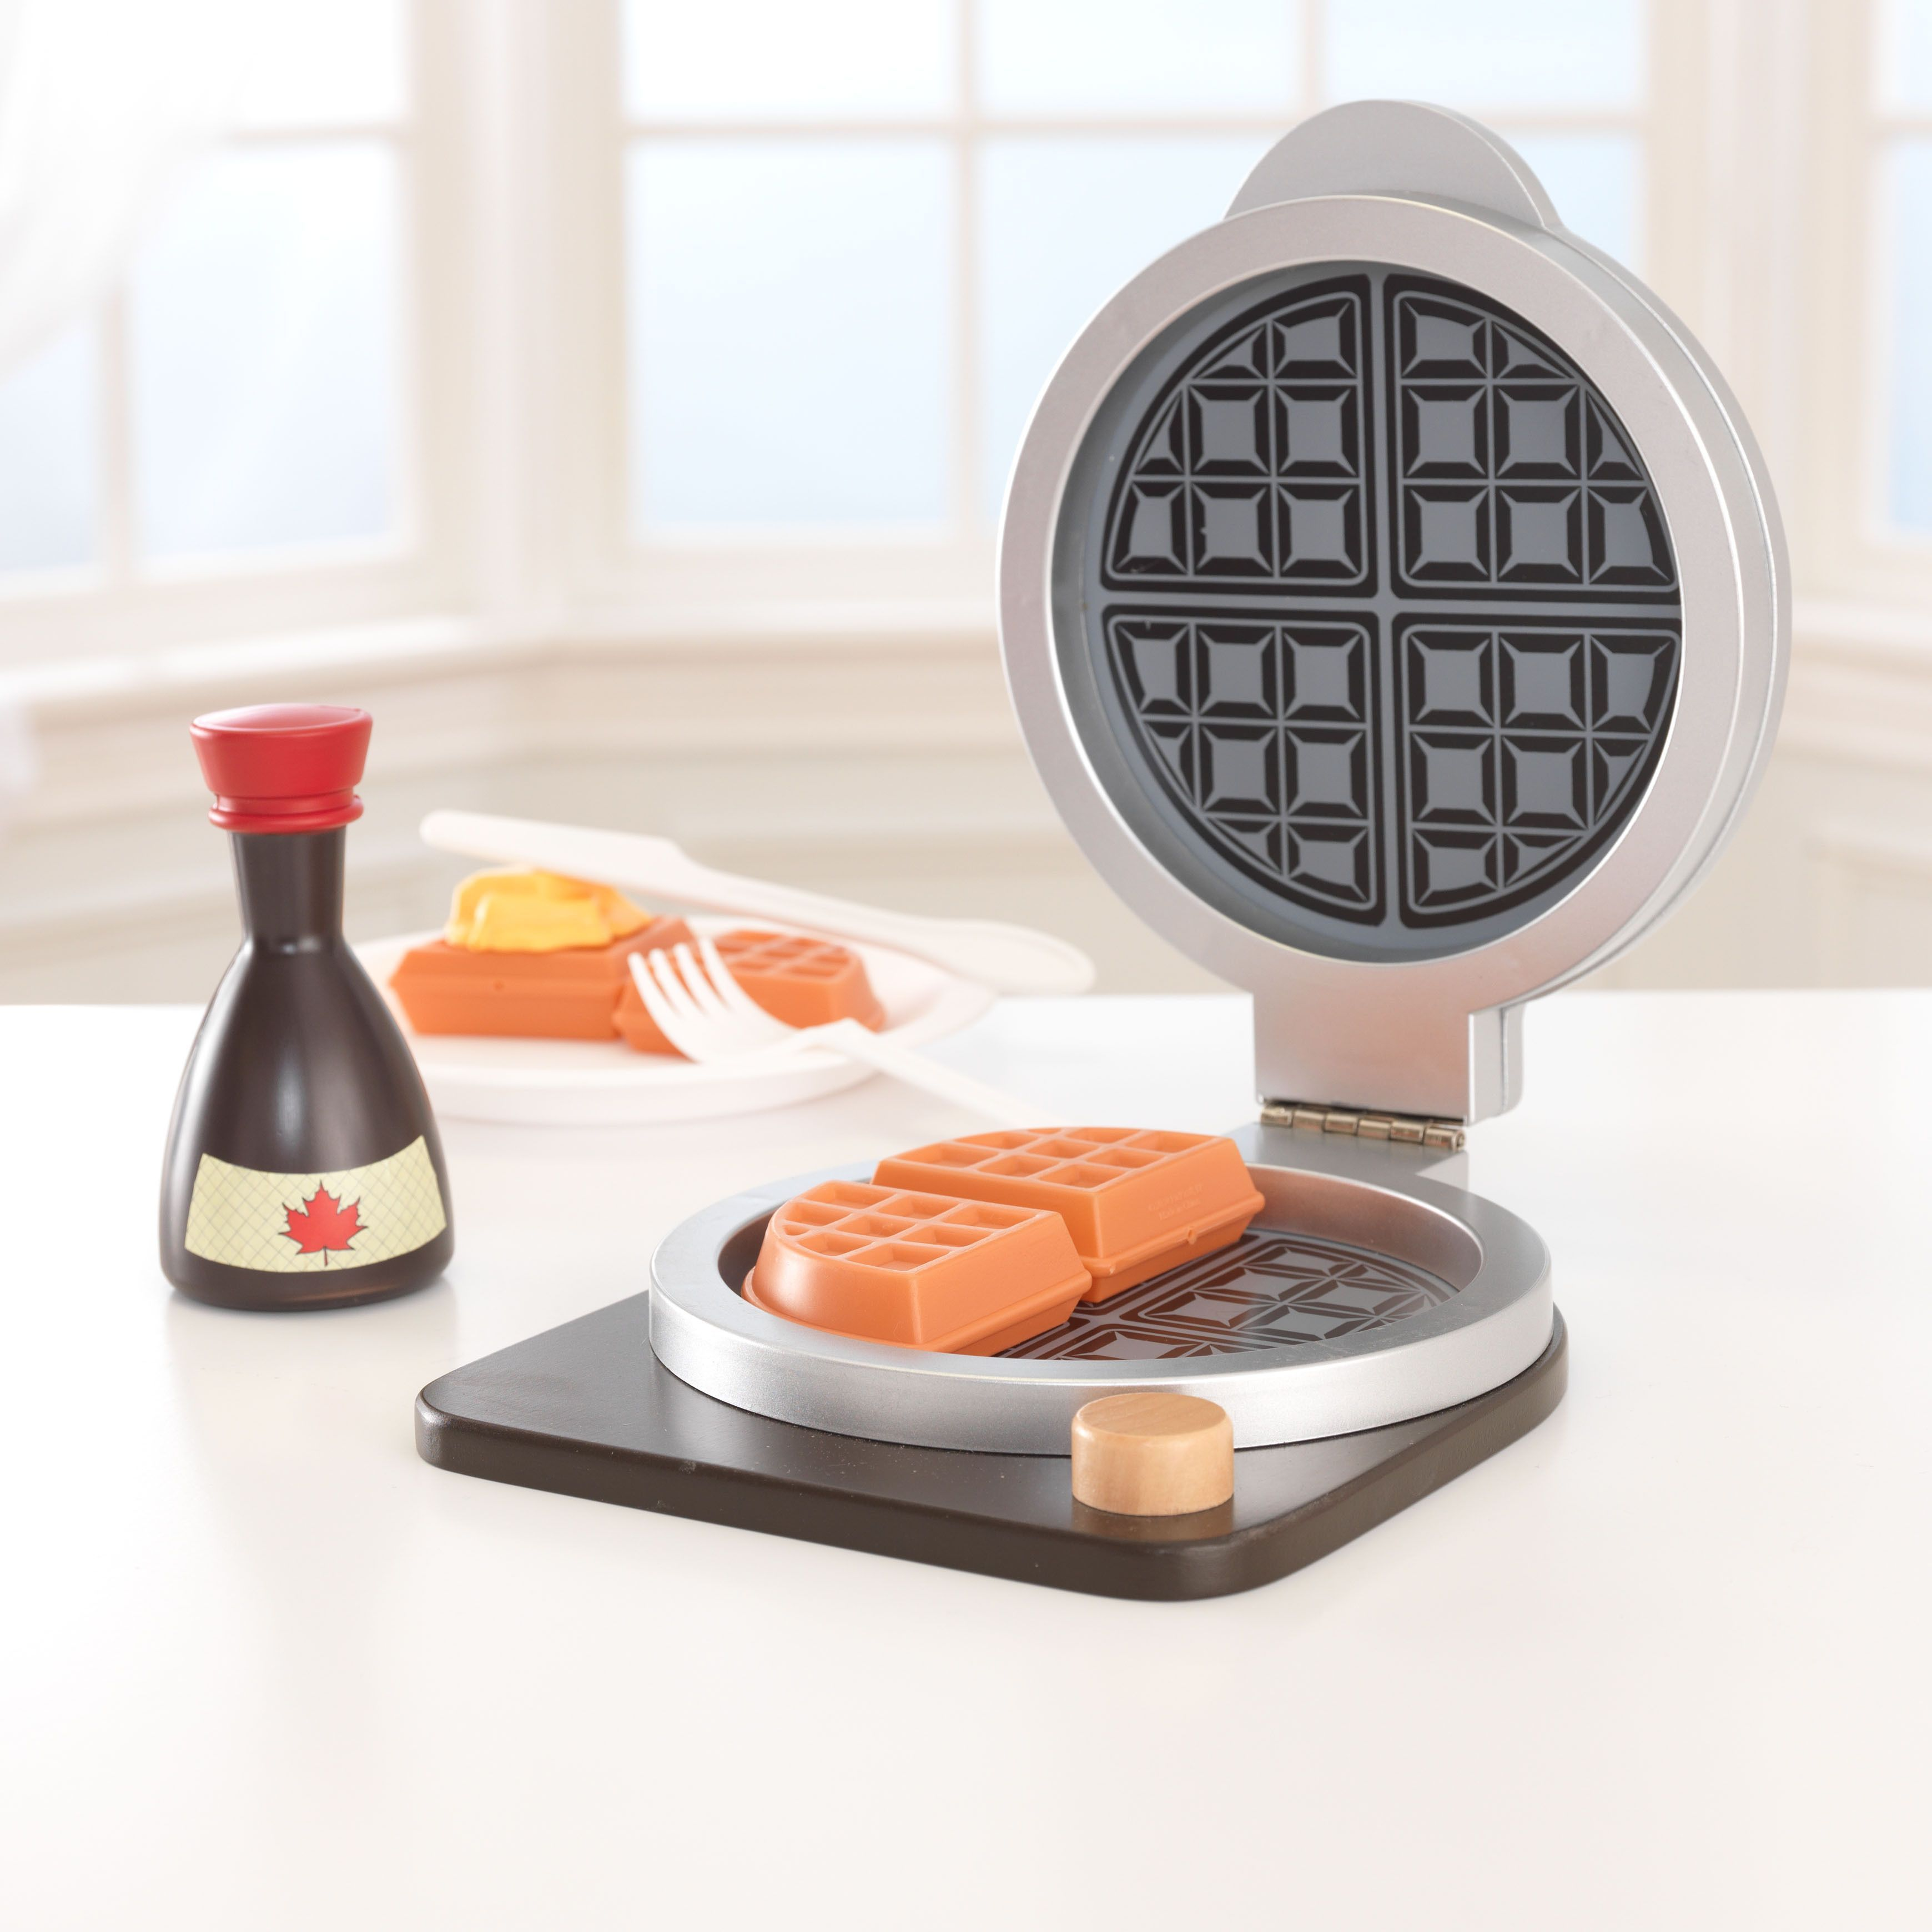 it s time to play pretend and cook up some delicious breakfast our waffle play set lets young boys and girls feel all grown up